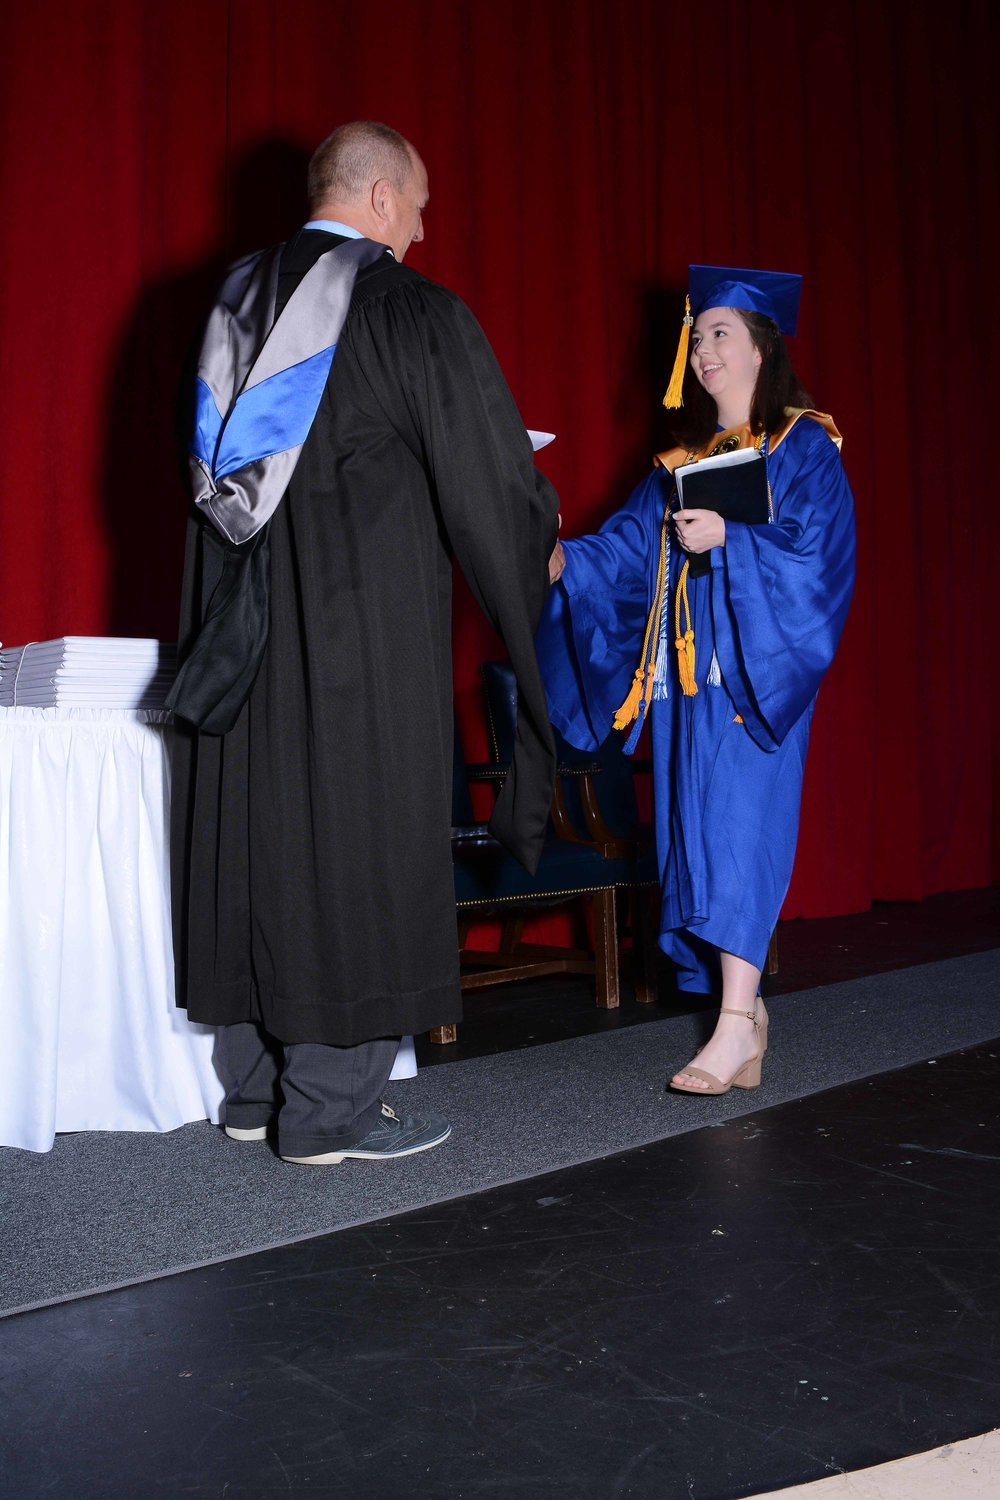 May14 Commencement33.jpg